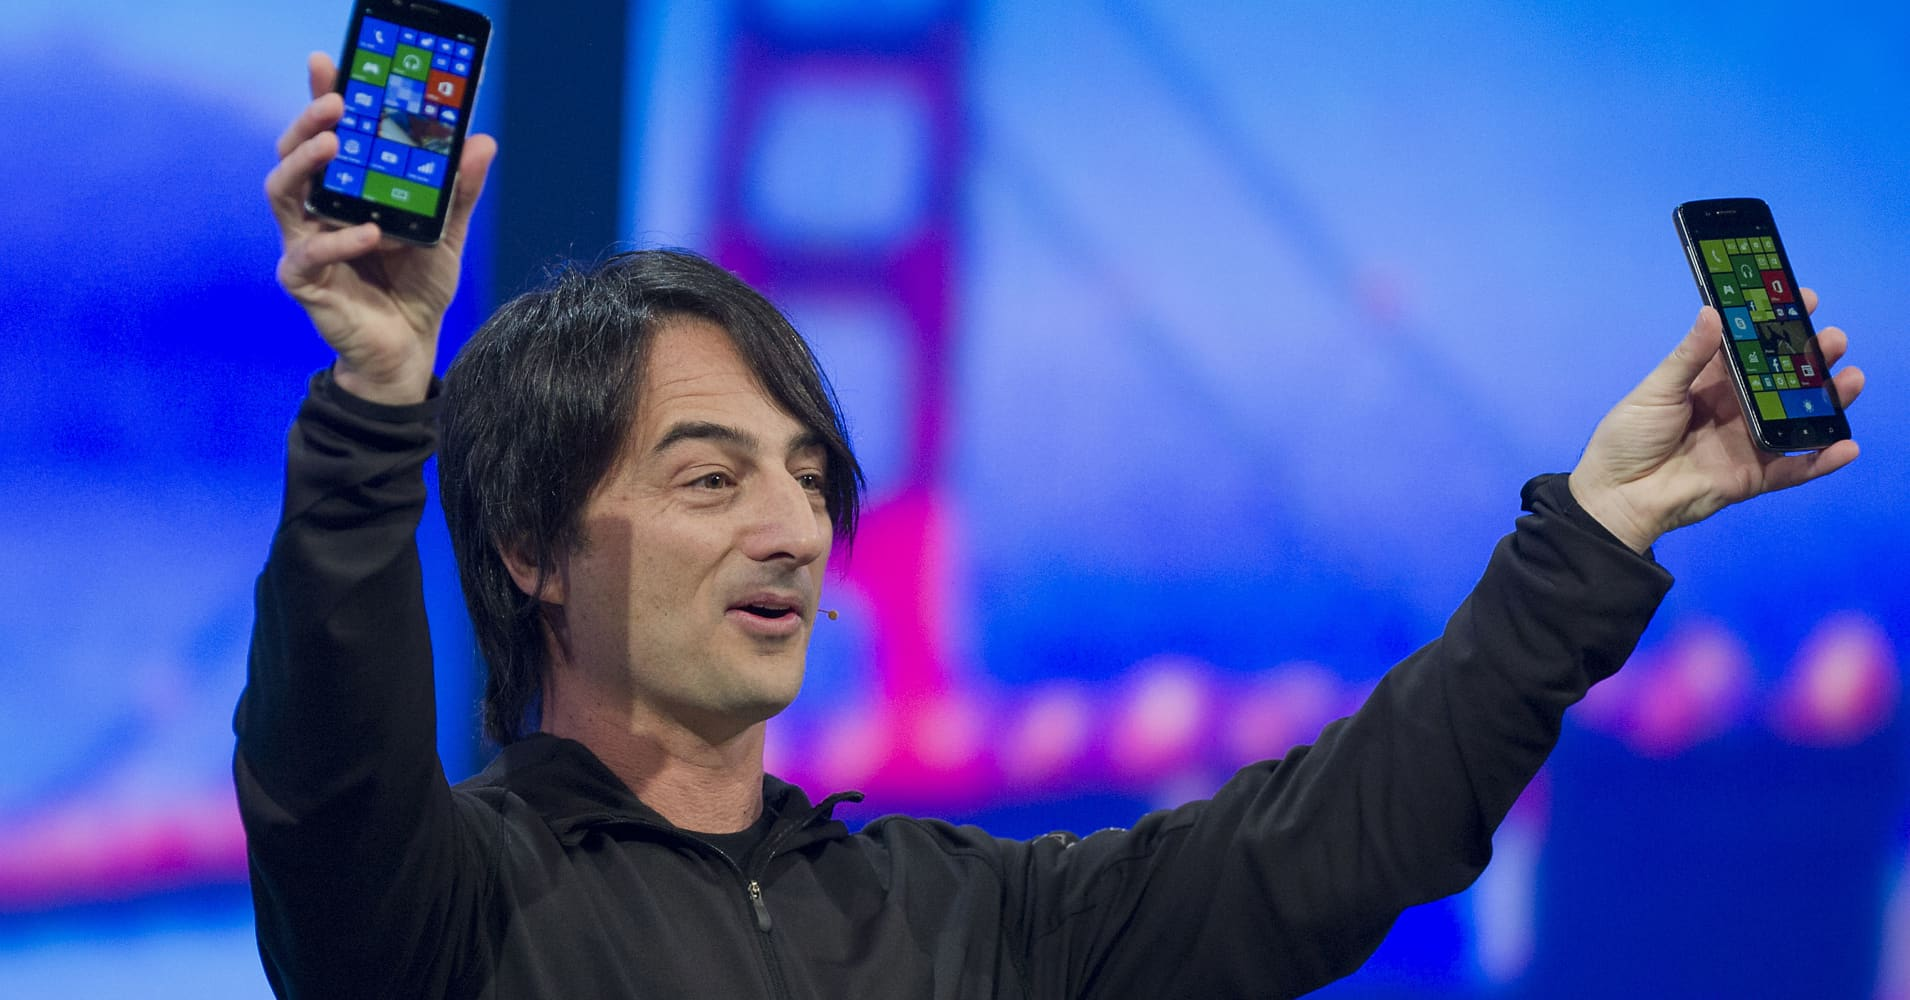 Microsoft executive Joe Belfiore presents at the Build developers conference in San Francisco in 2014.